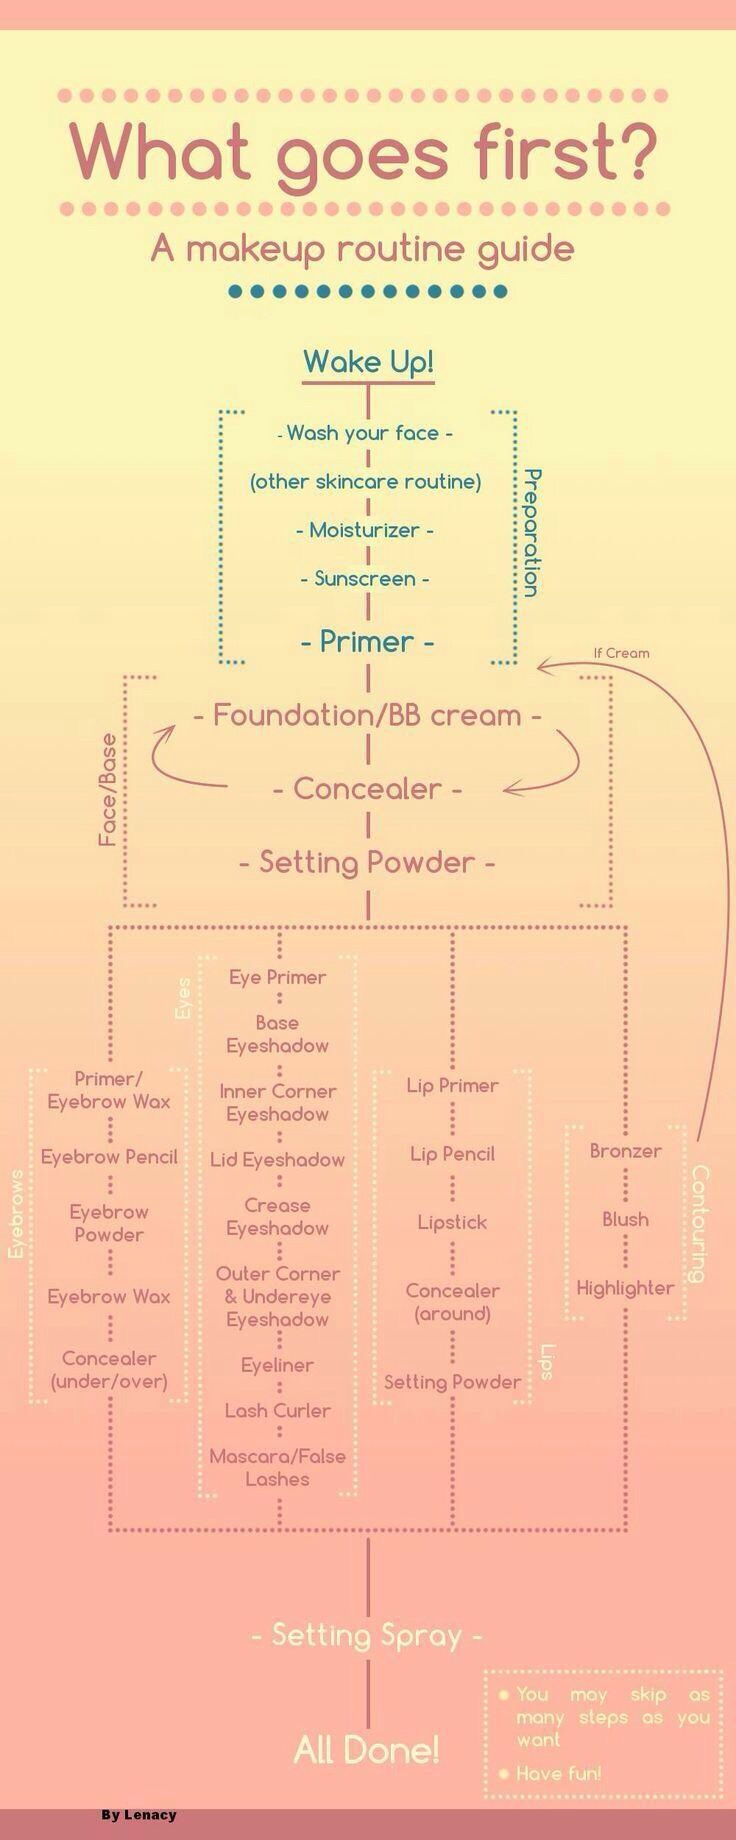 Makeup routine guide